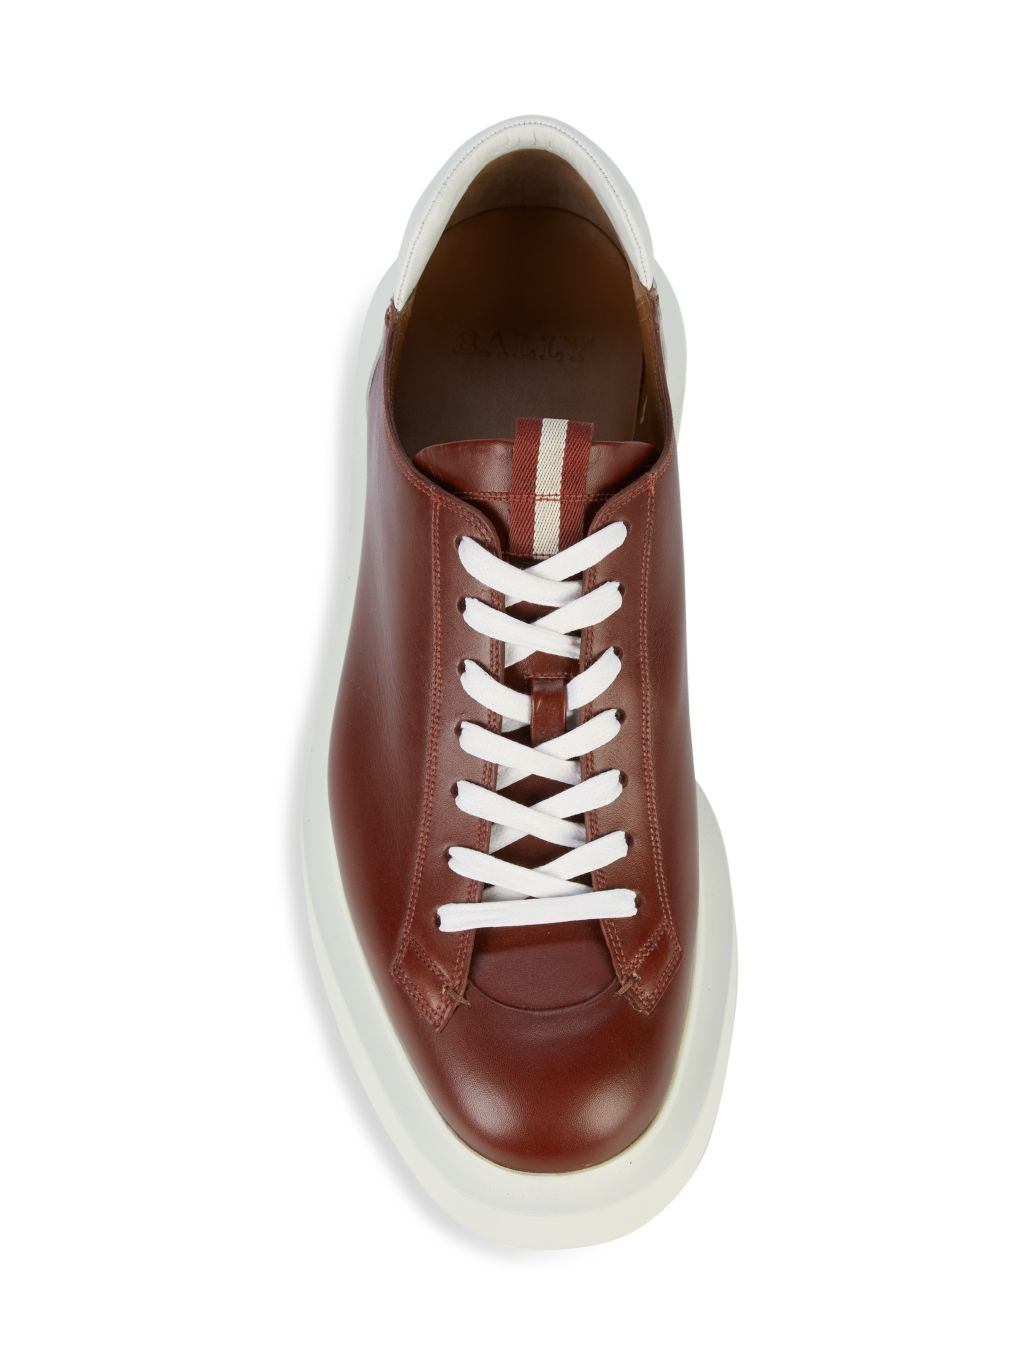 Bally Olivio Leather Sneakers